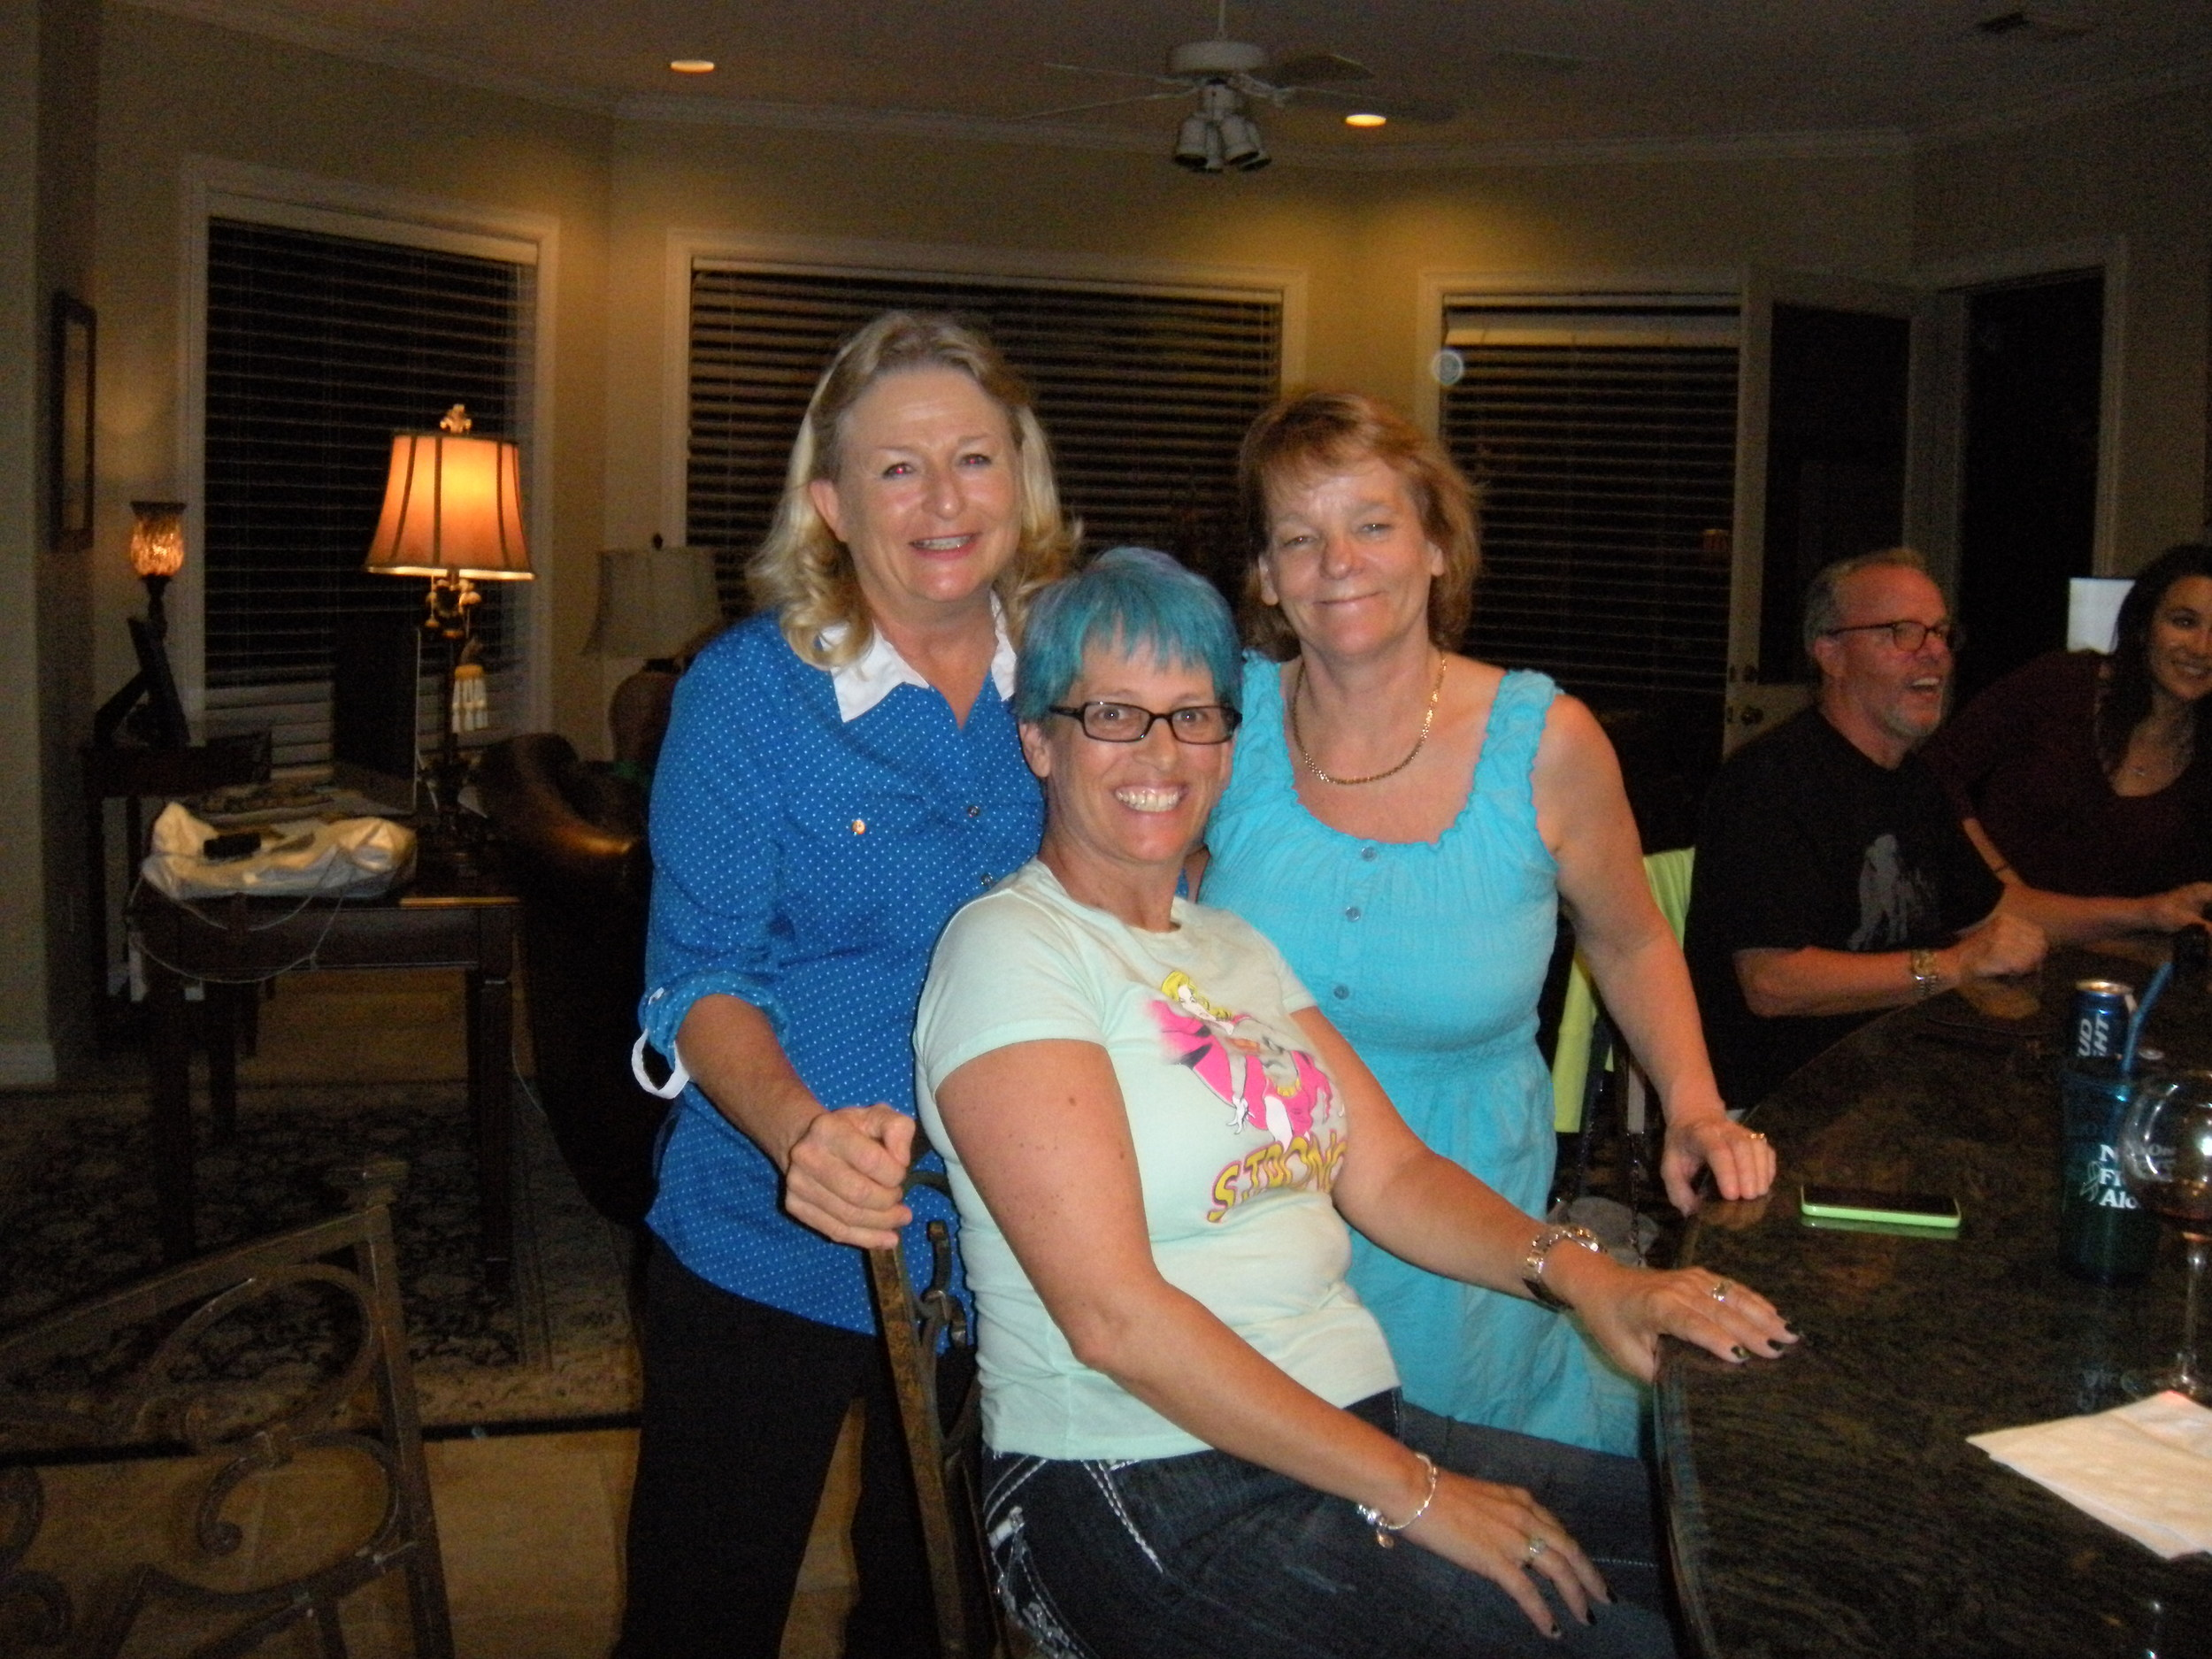 Betty, Keri, and Heidi. The shades of blue look good on them.